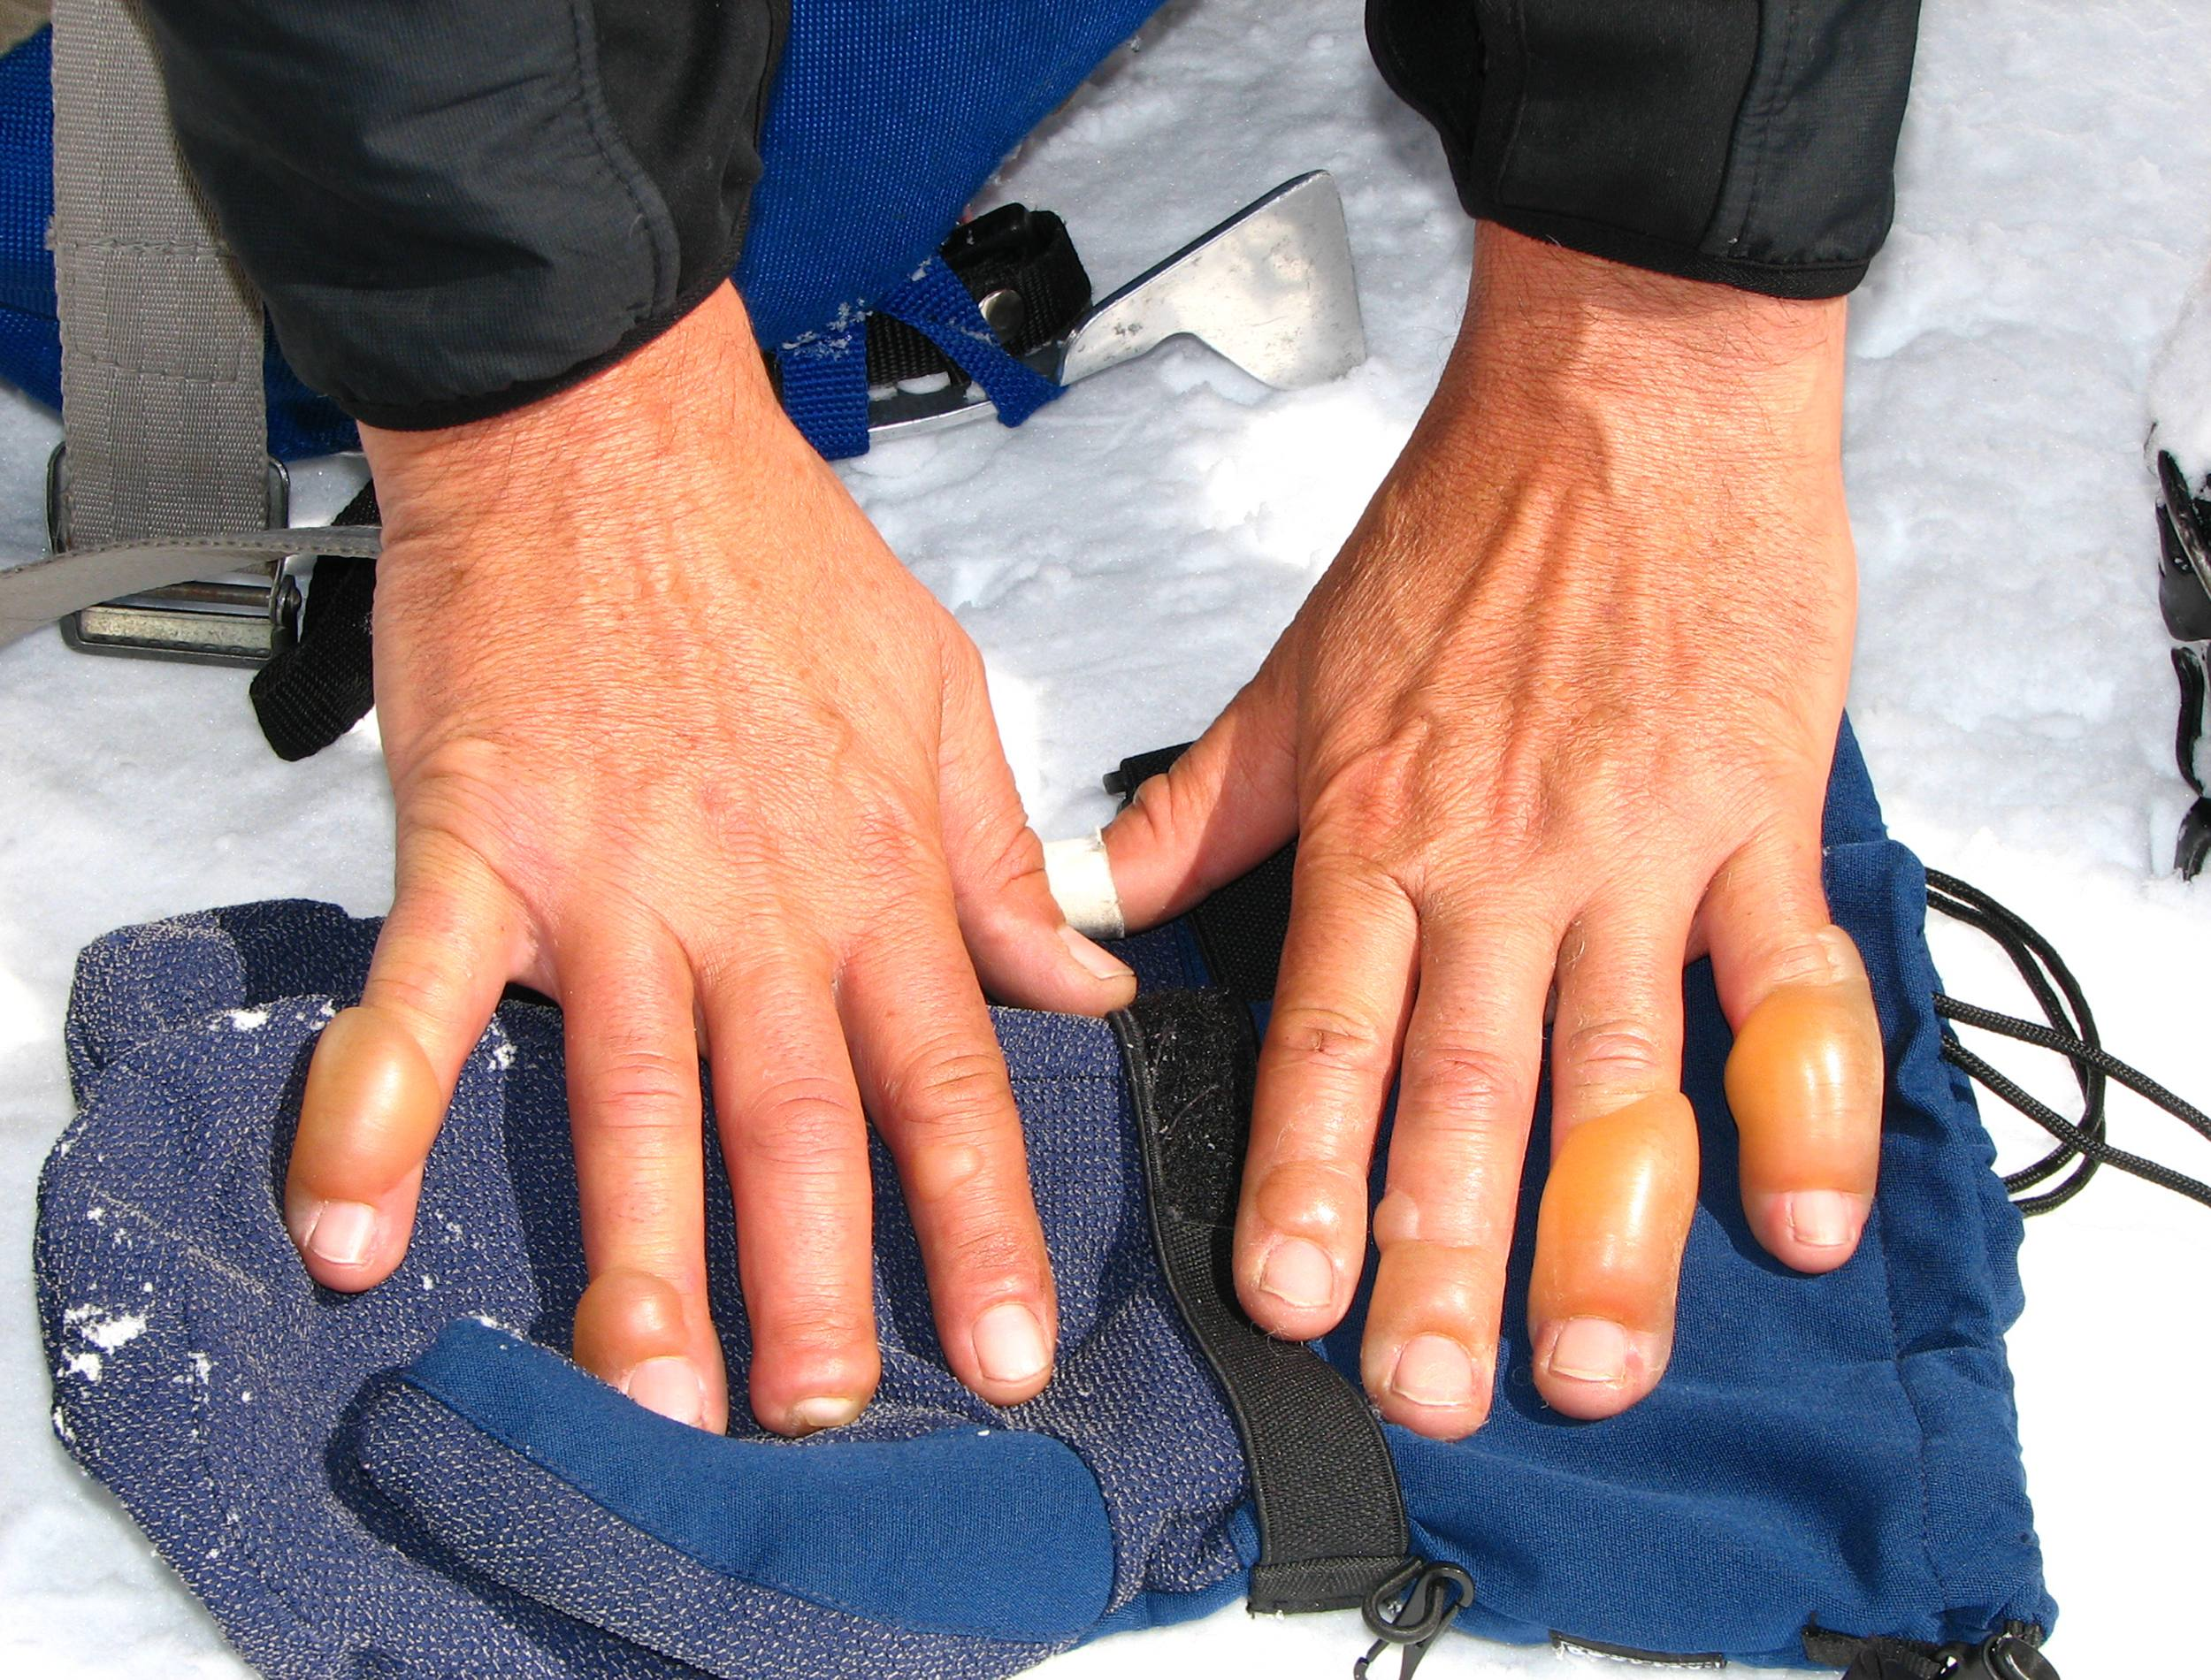 closeup of hands swollen and suffering in the cold from frostbite